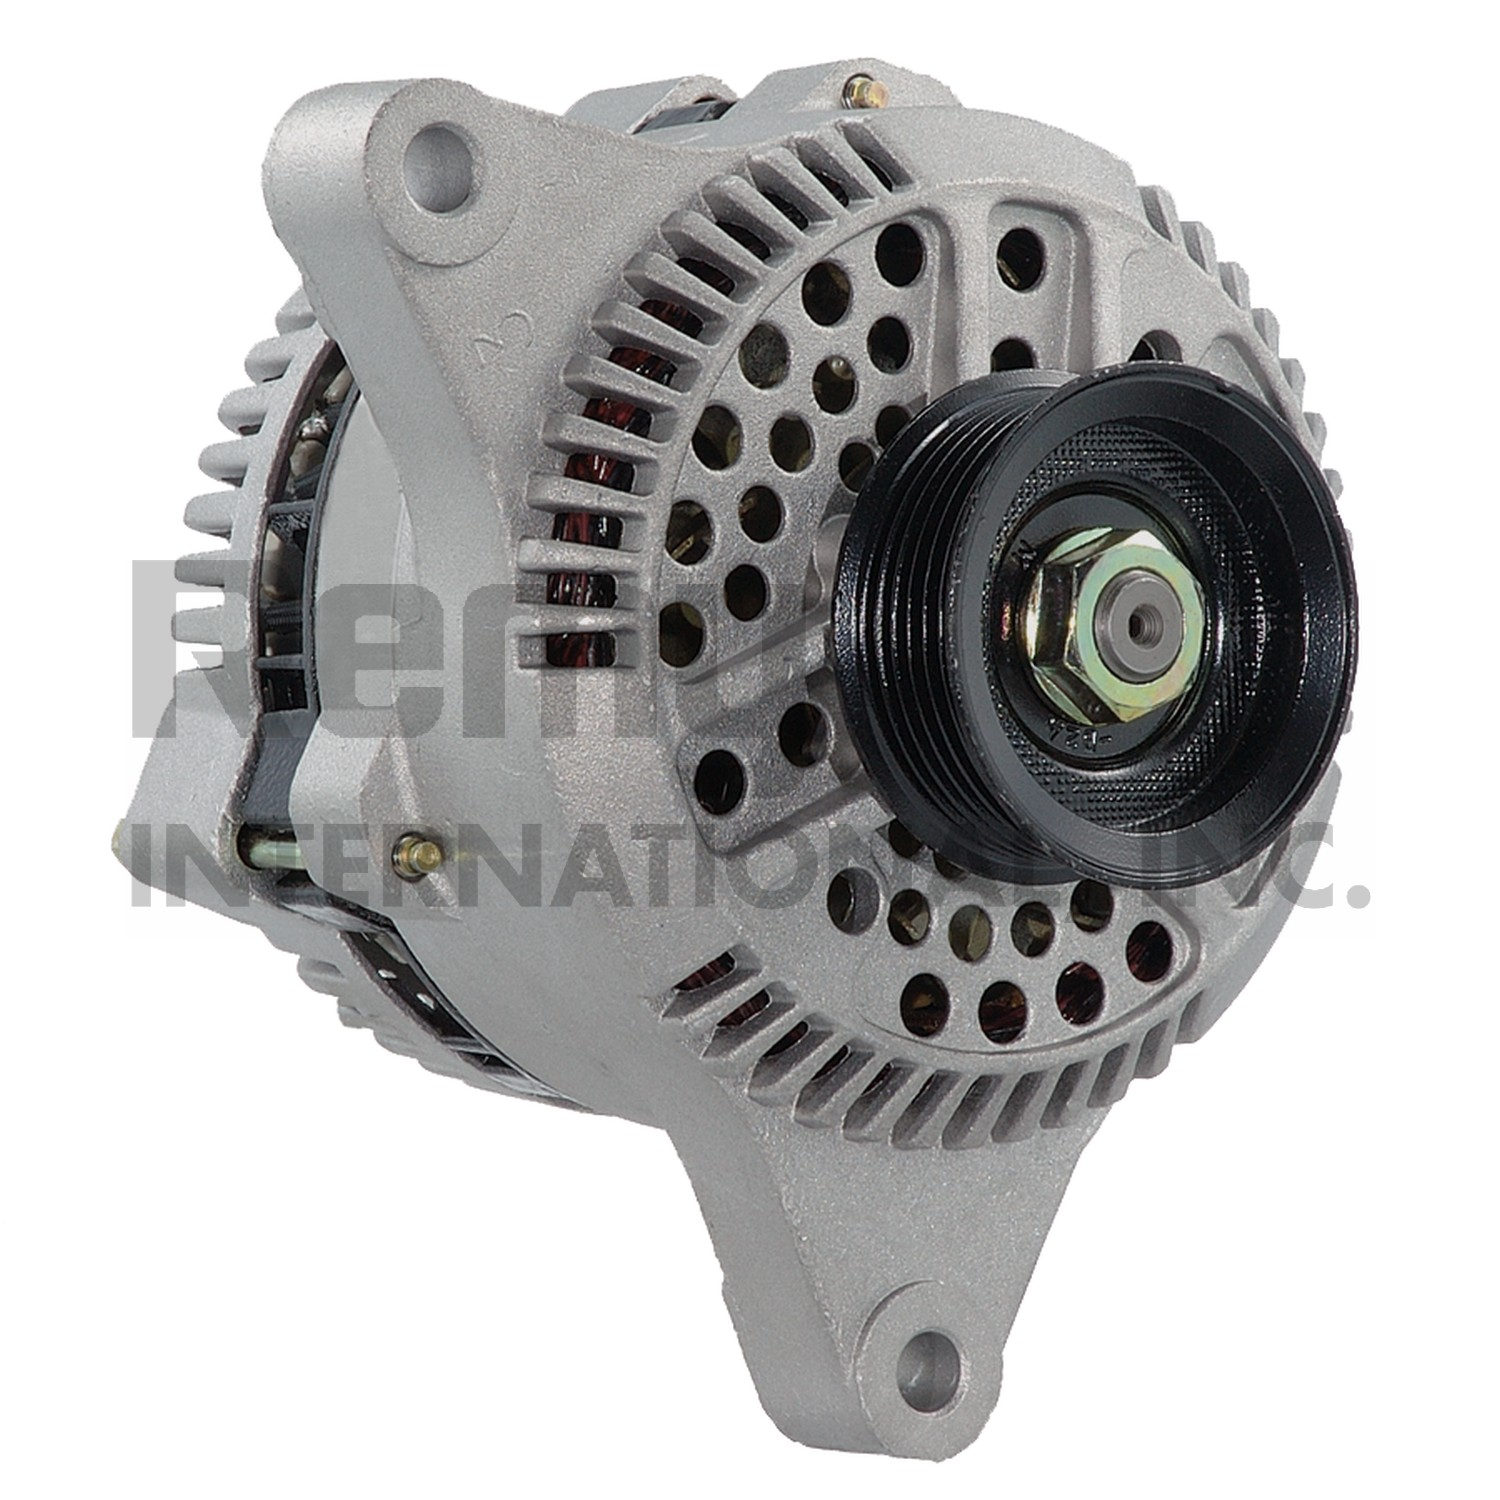 hight resolution of details about remy 23656 alternator for ford contour mercury cougar mystique